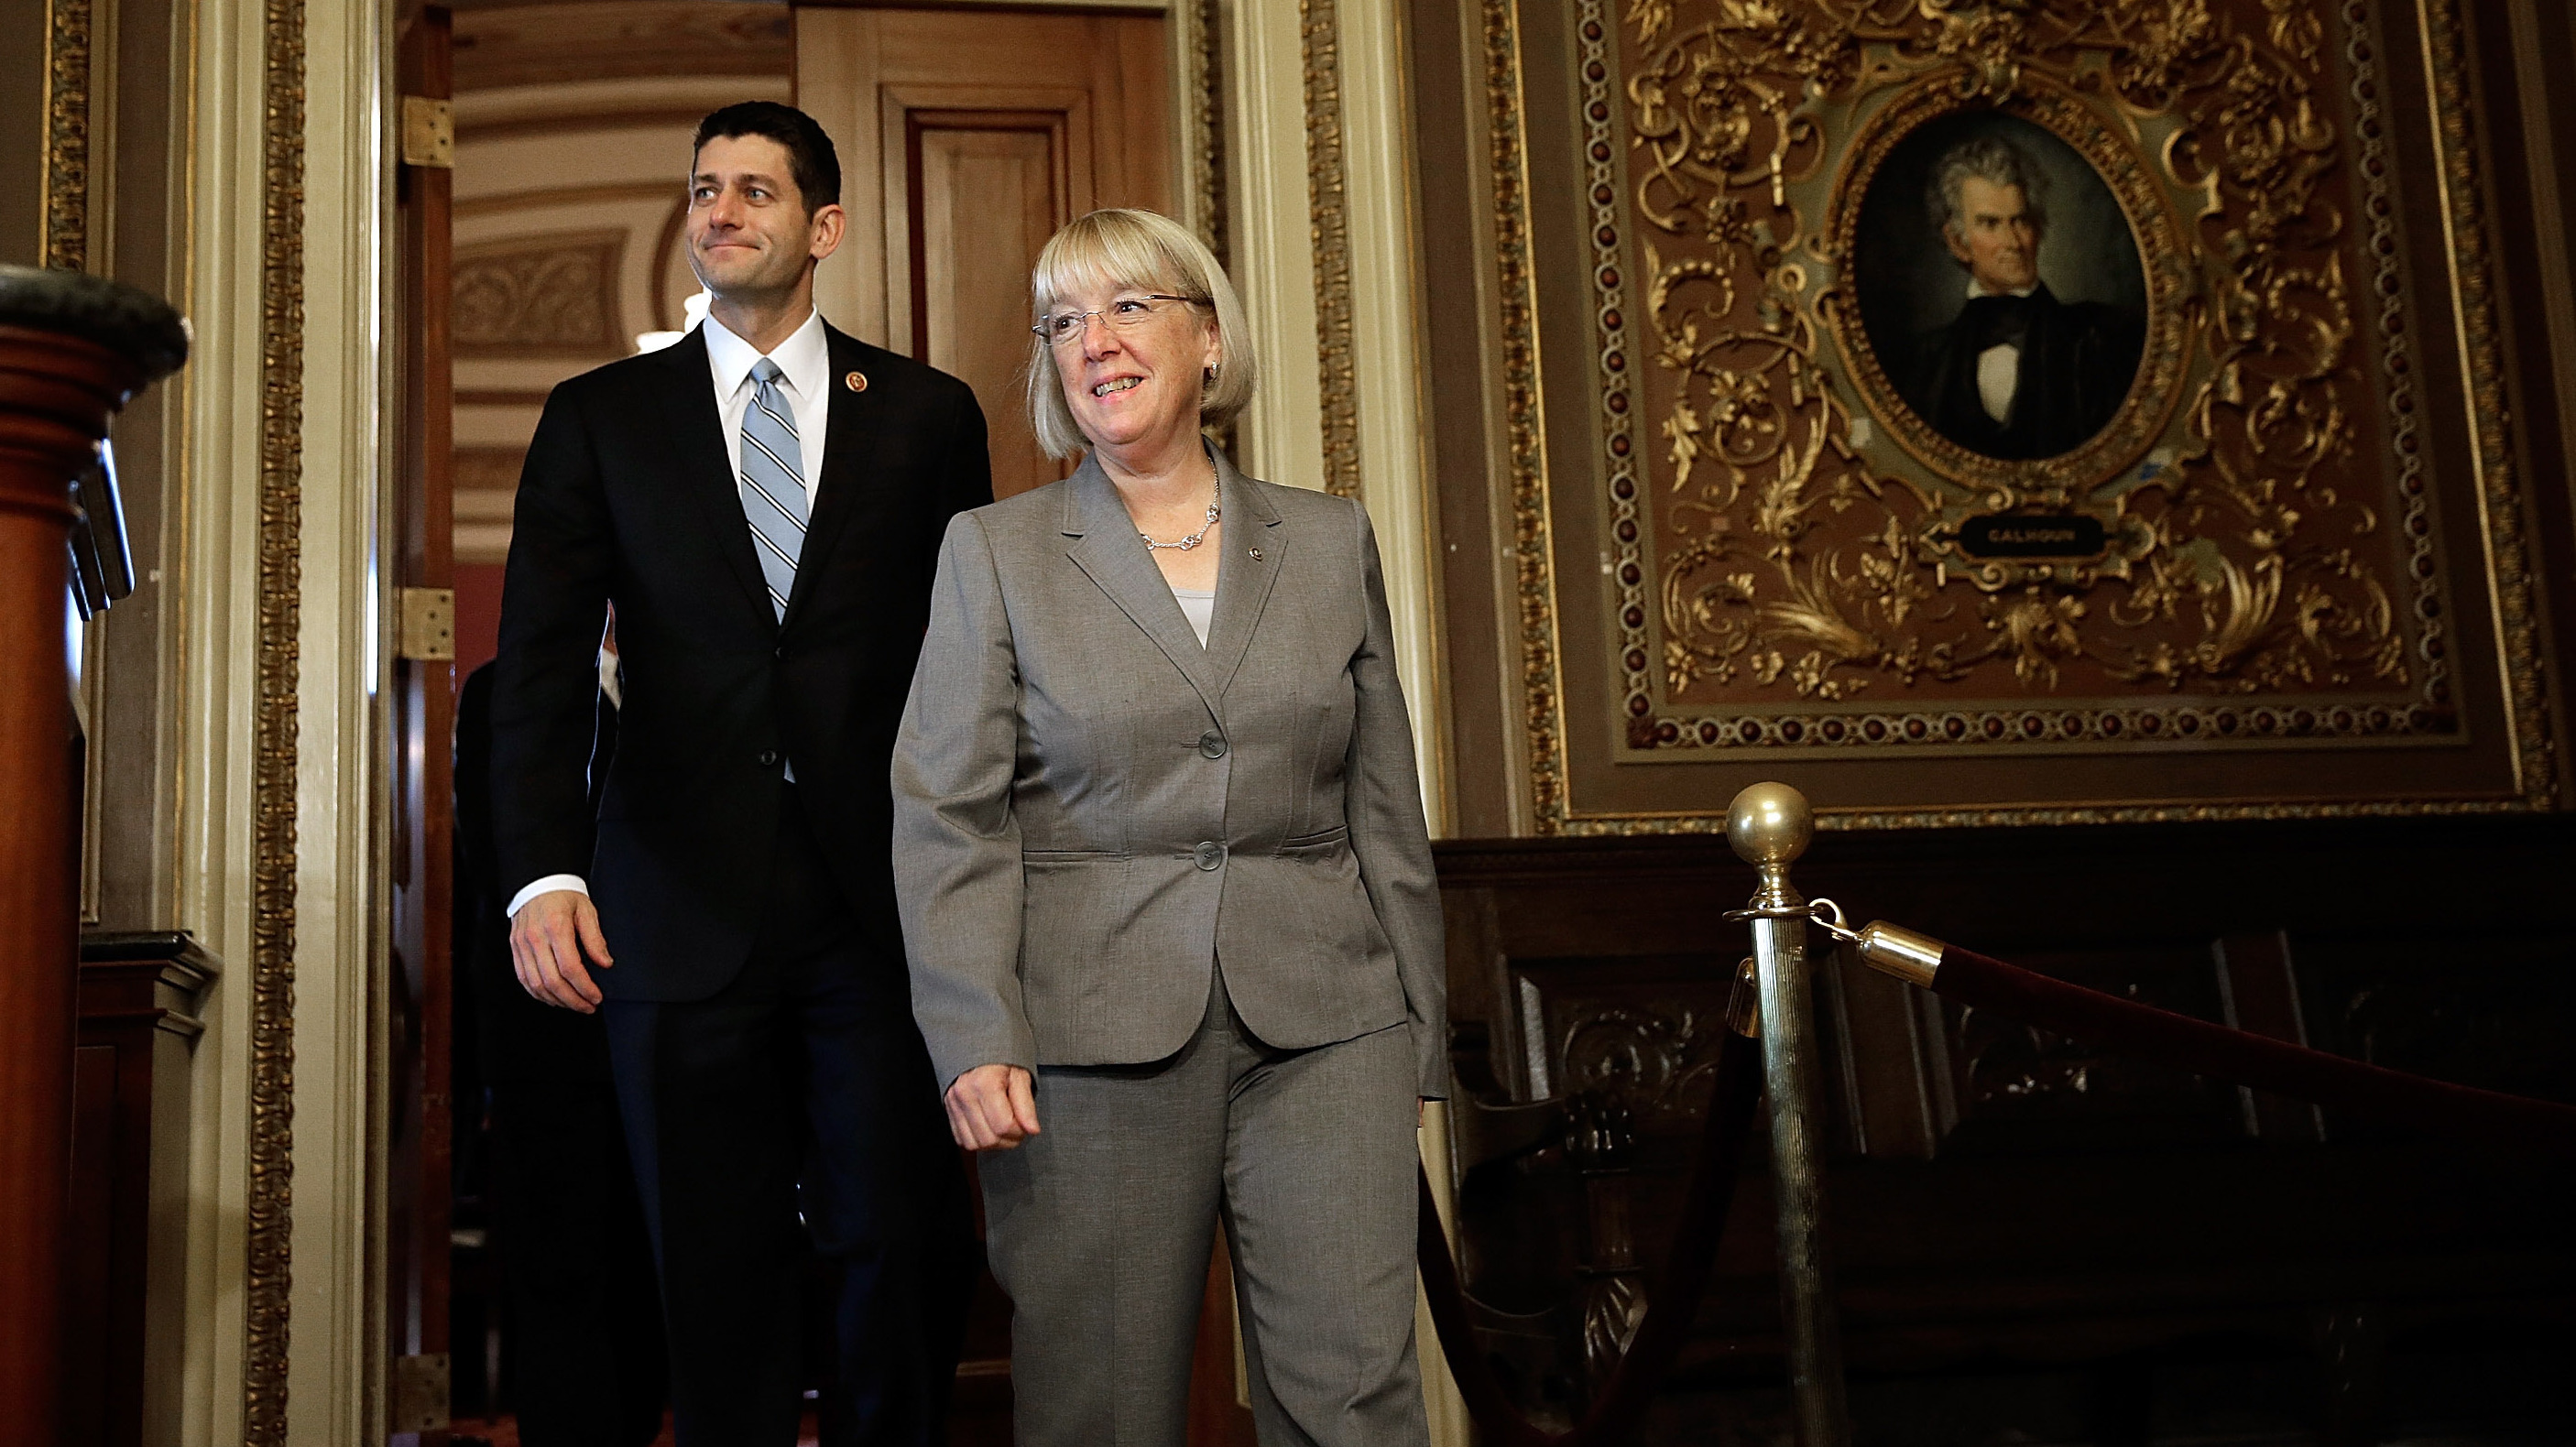 Congressional Odd Couple Could Be Key To Any Budget Breakthrough